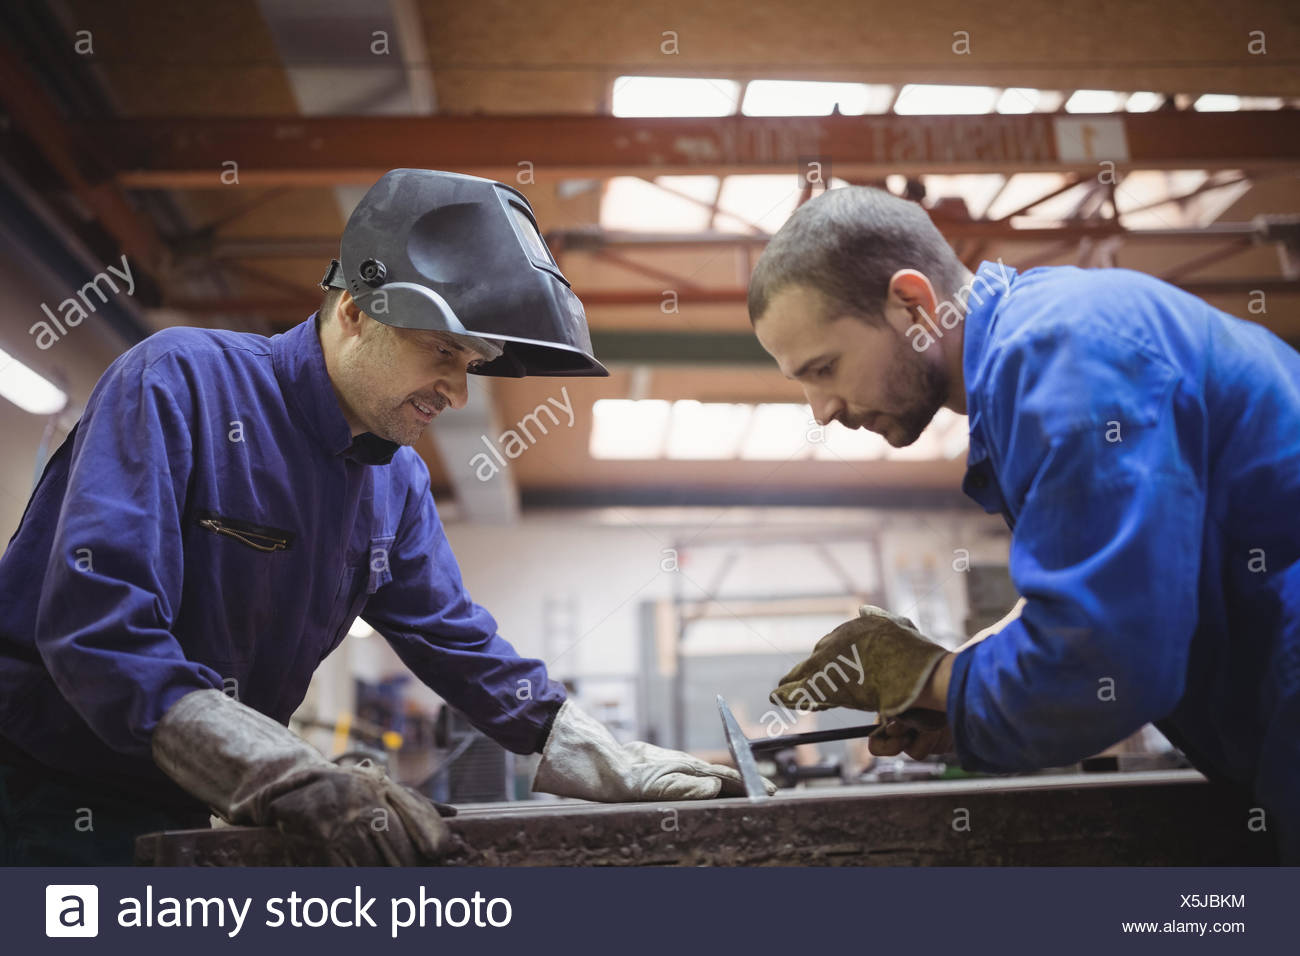 Tradesmen working together - Stock Image